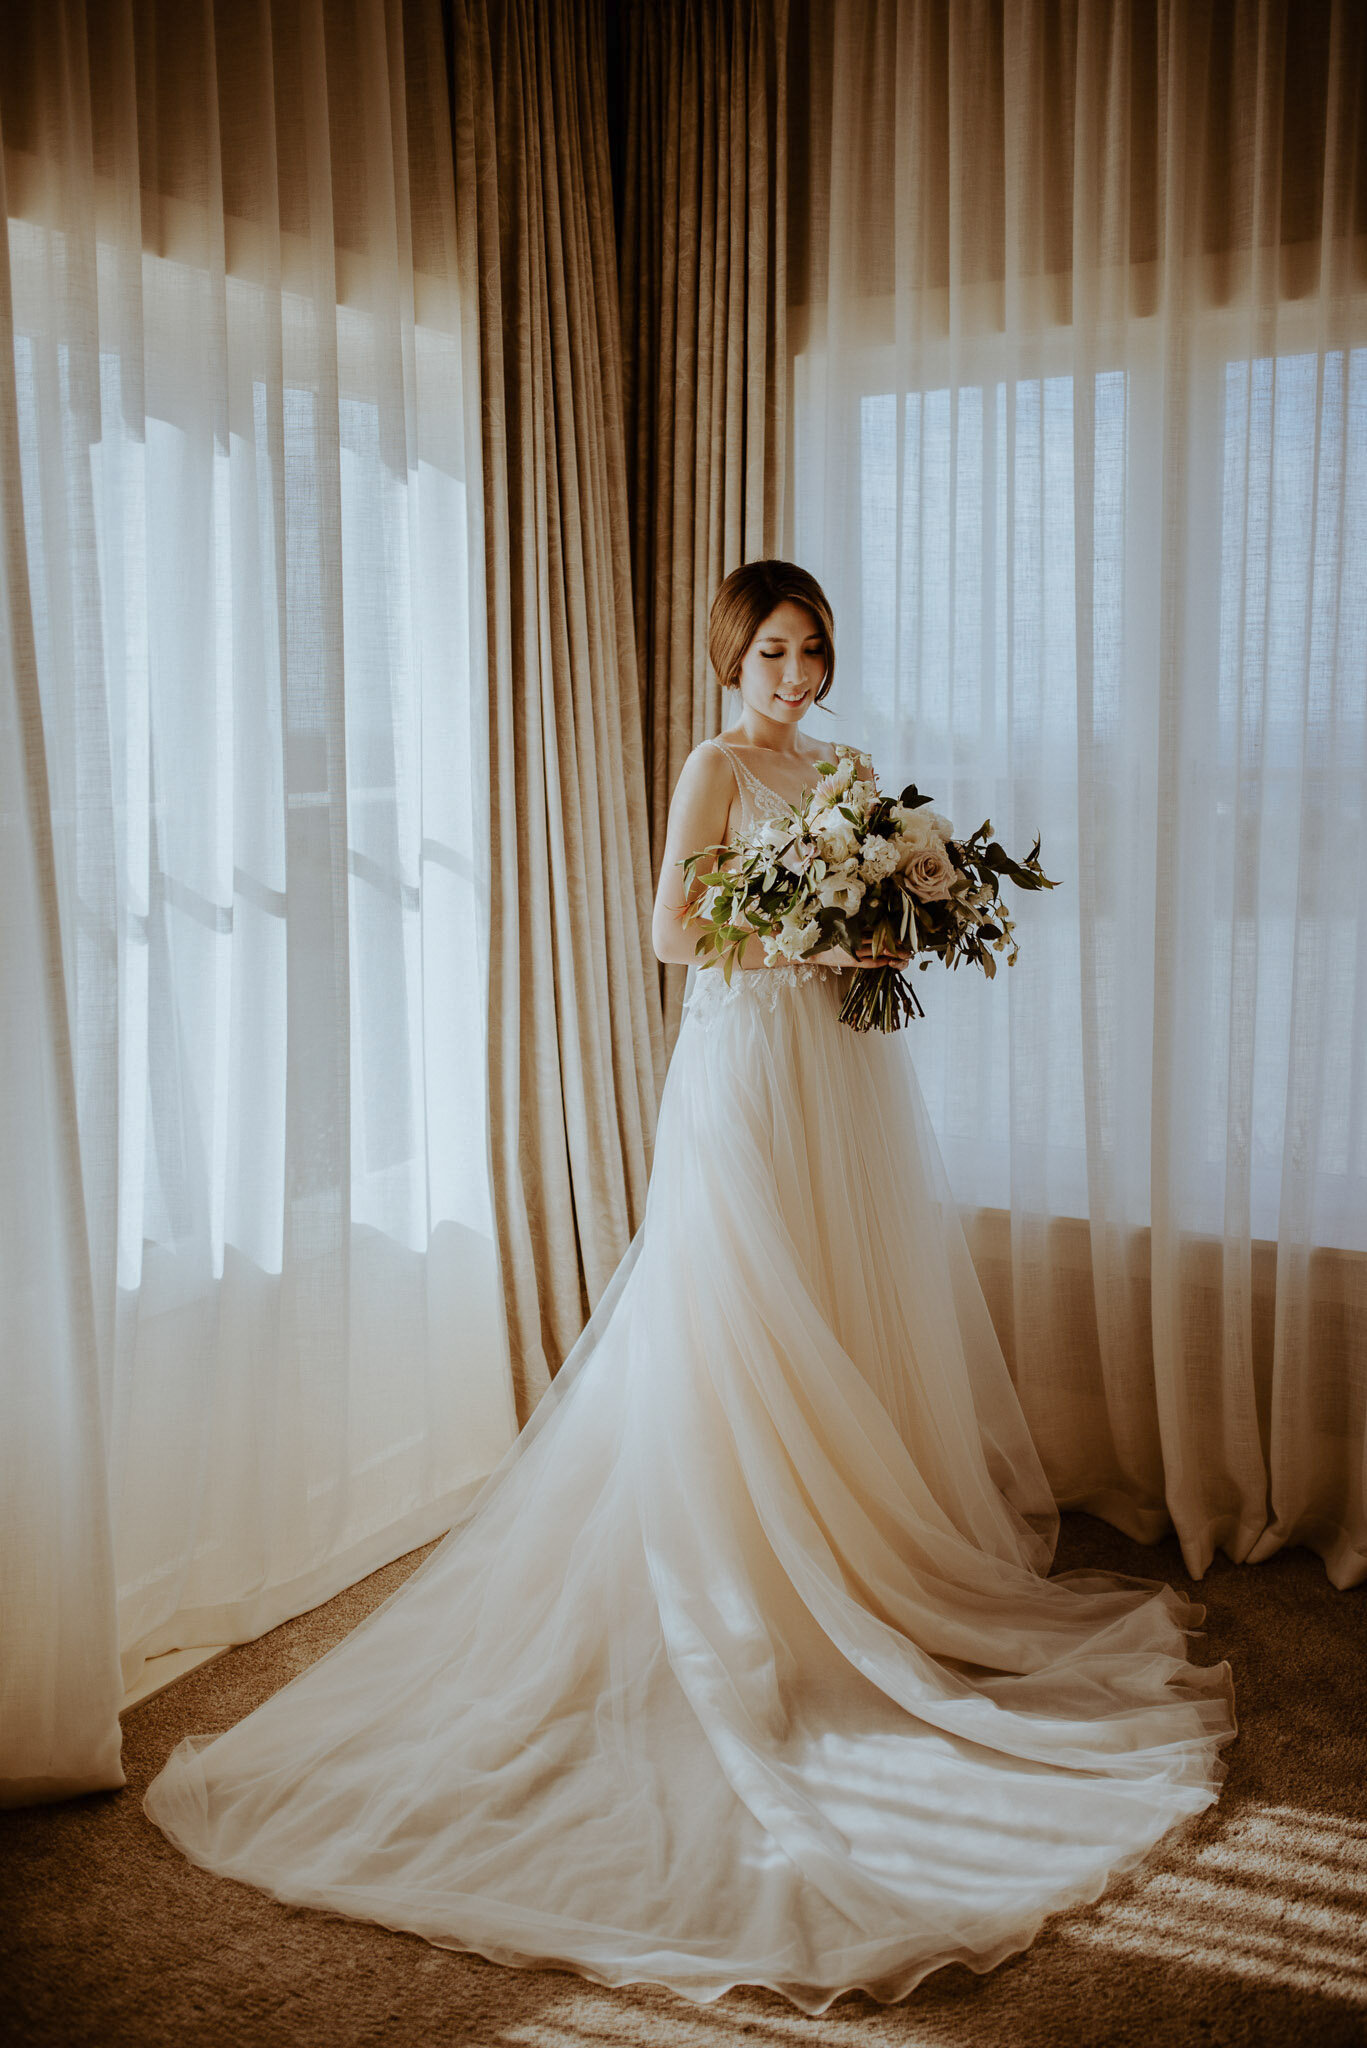 Bride + Groom Rooms - Mudbrick also have two beautiful rooms at The Lodge for you to get ready at, apply the finishing touches of makeup, freshen up, or whatever you need to do just before you walk down that aisle.